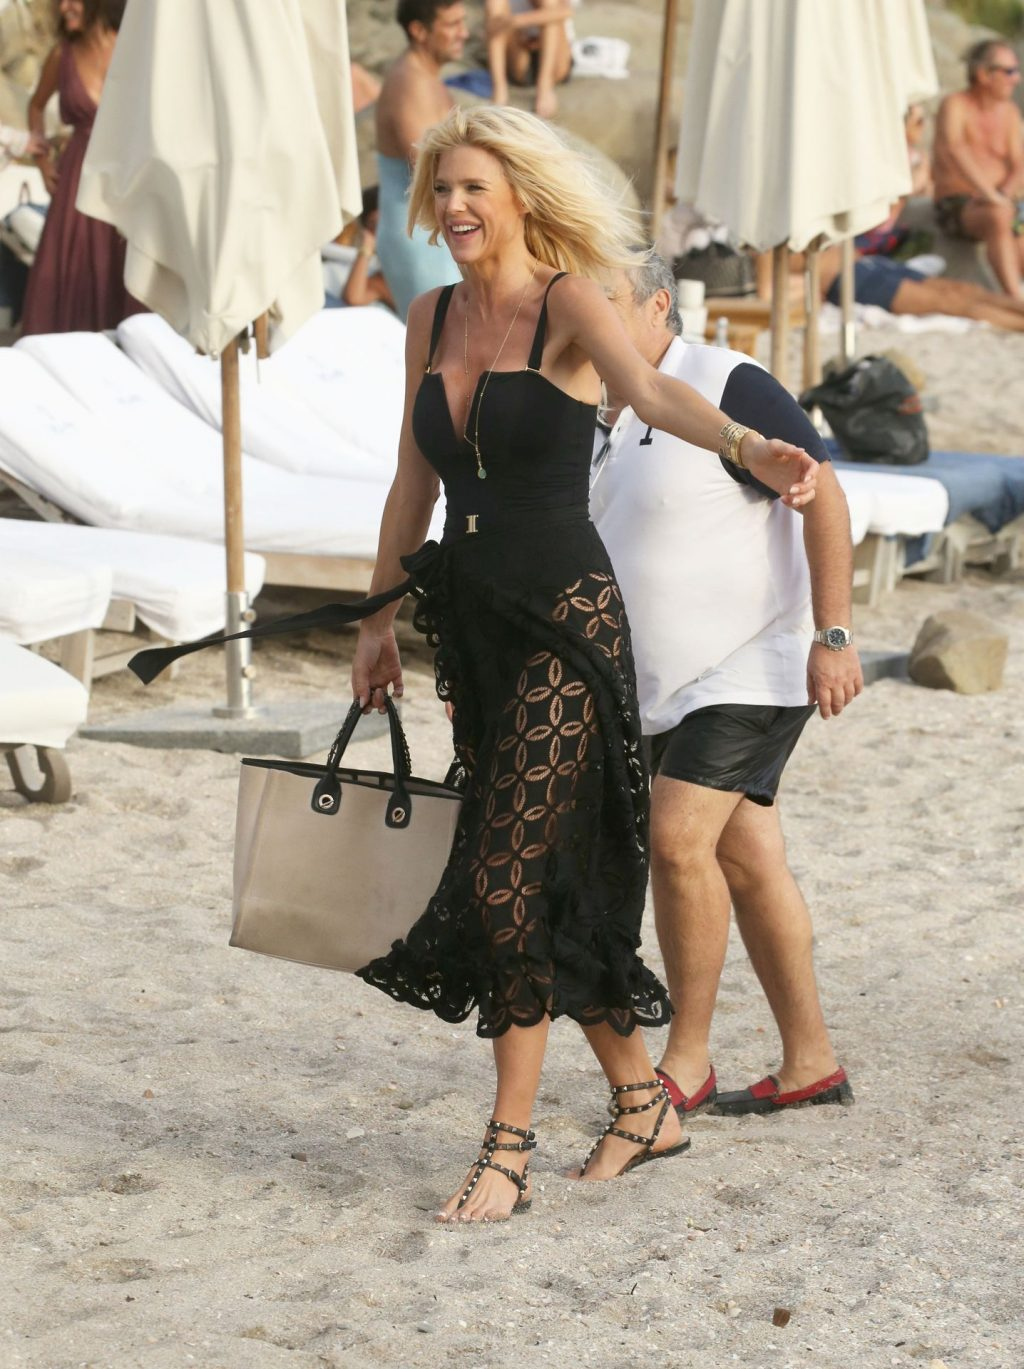 Victoria Silvstedt Sexy (41 New Photos)